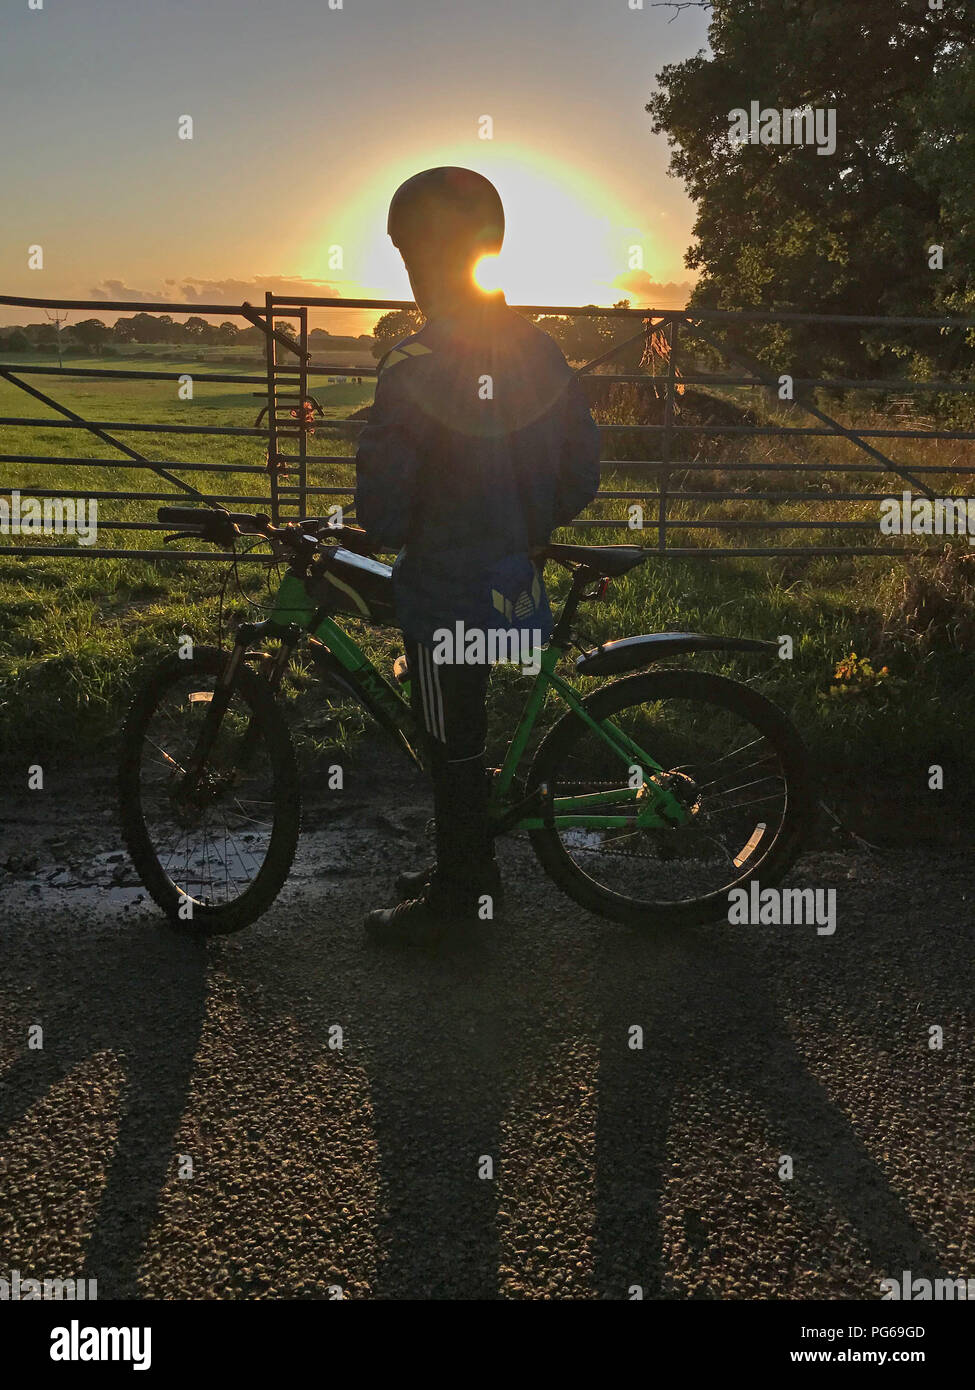 Sunset behind Youth on bicycle, in countryside, at dusk - Stock Image